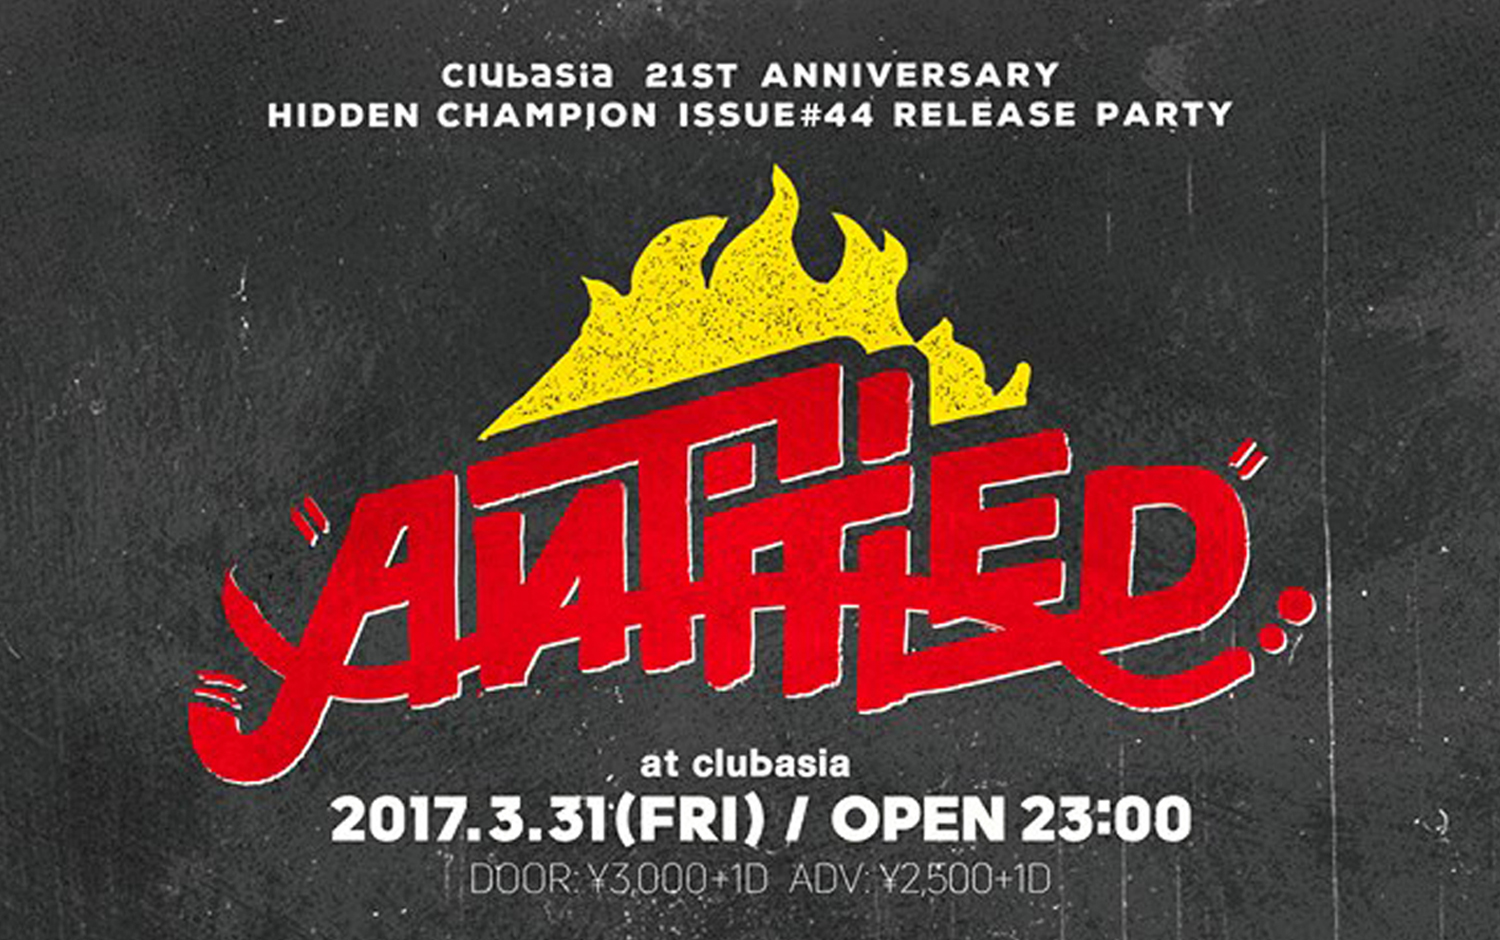 clubasia 21th Anniversary × HIDDEN CHAMPION Issue#44 Release Party 『Antitled』